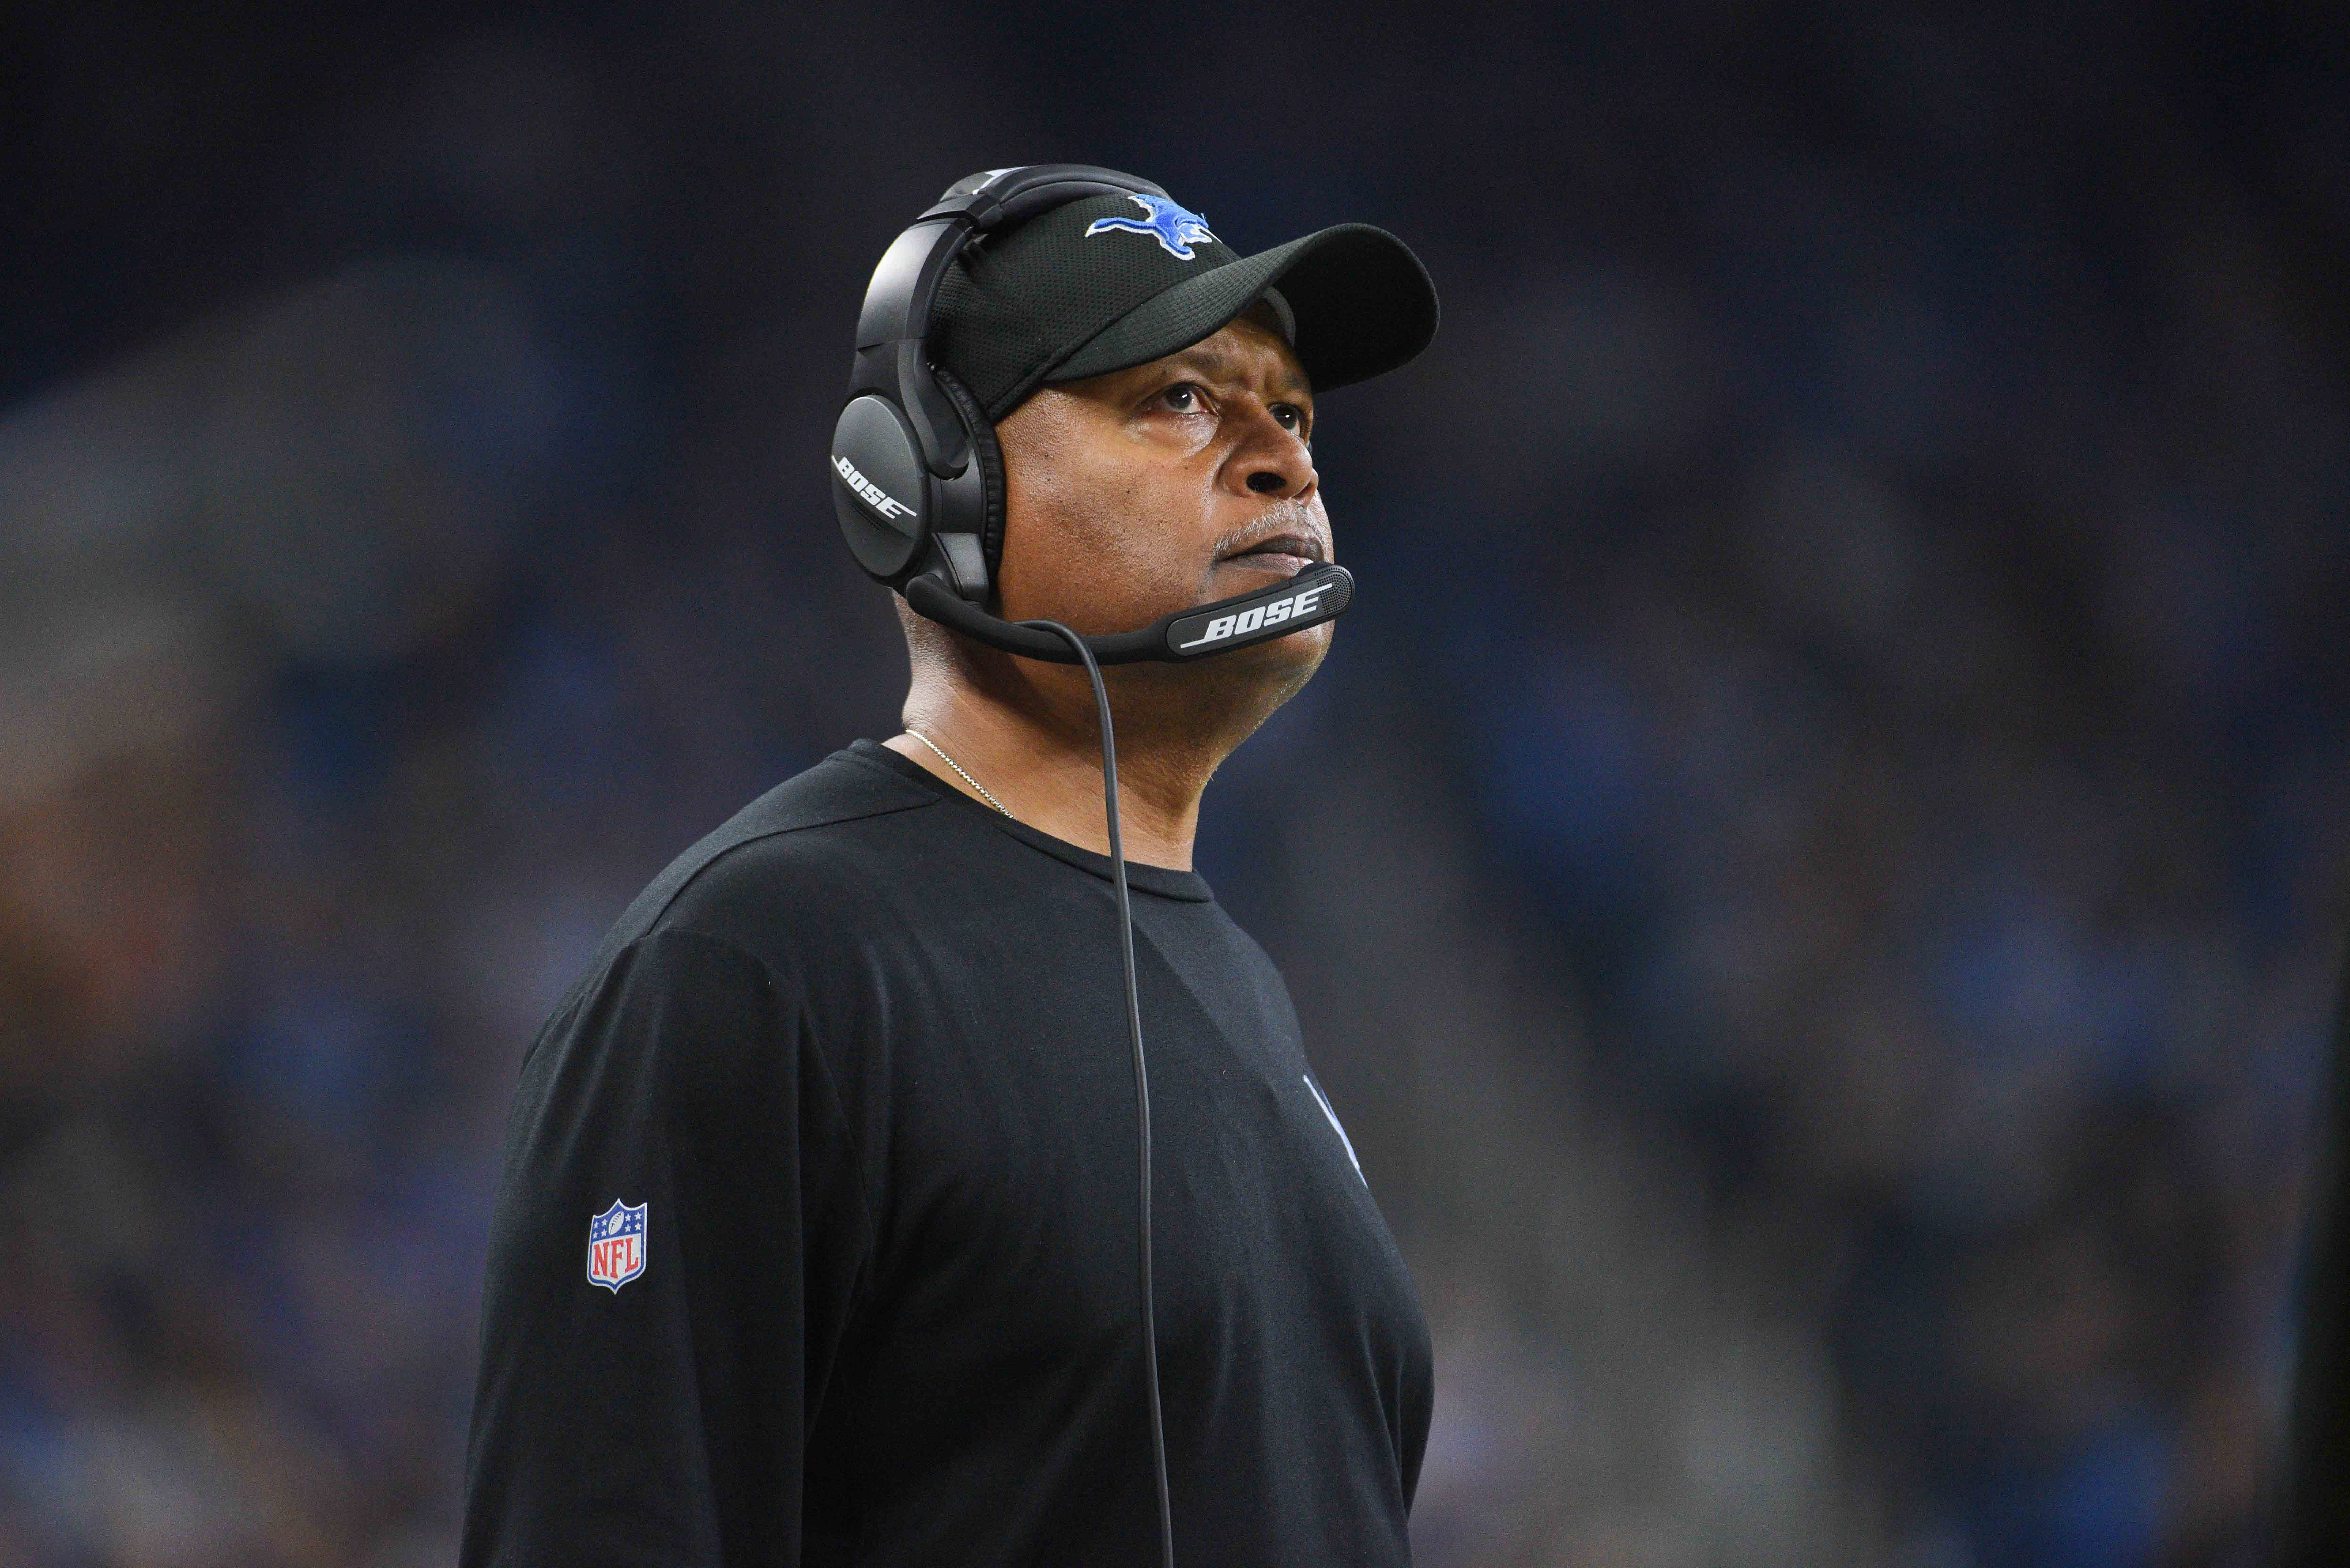 Dolphins assistant coach Jim Caldwell to take leave of absence to address health issues